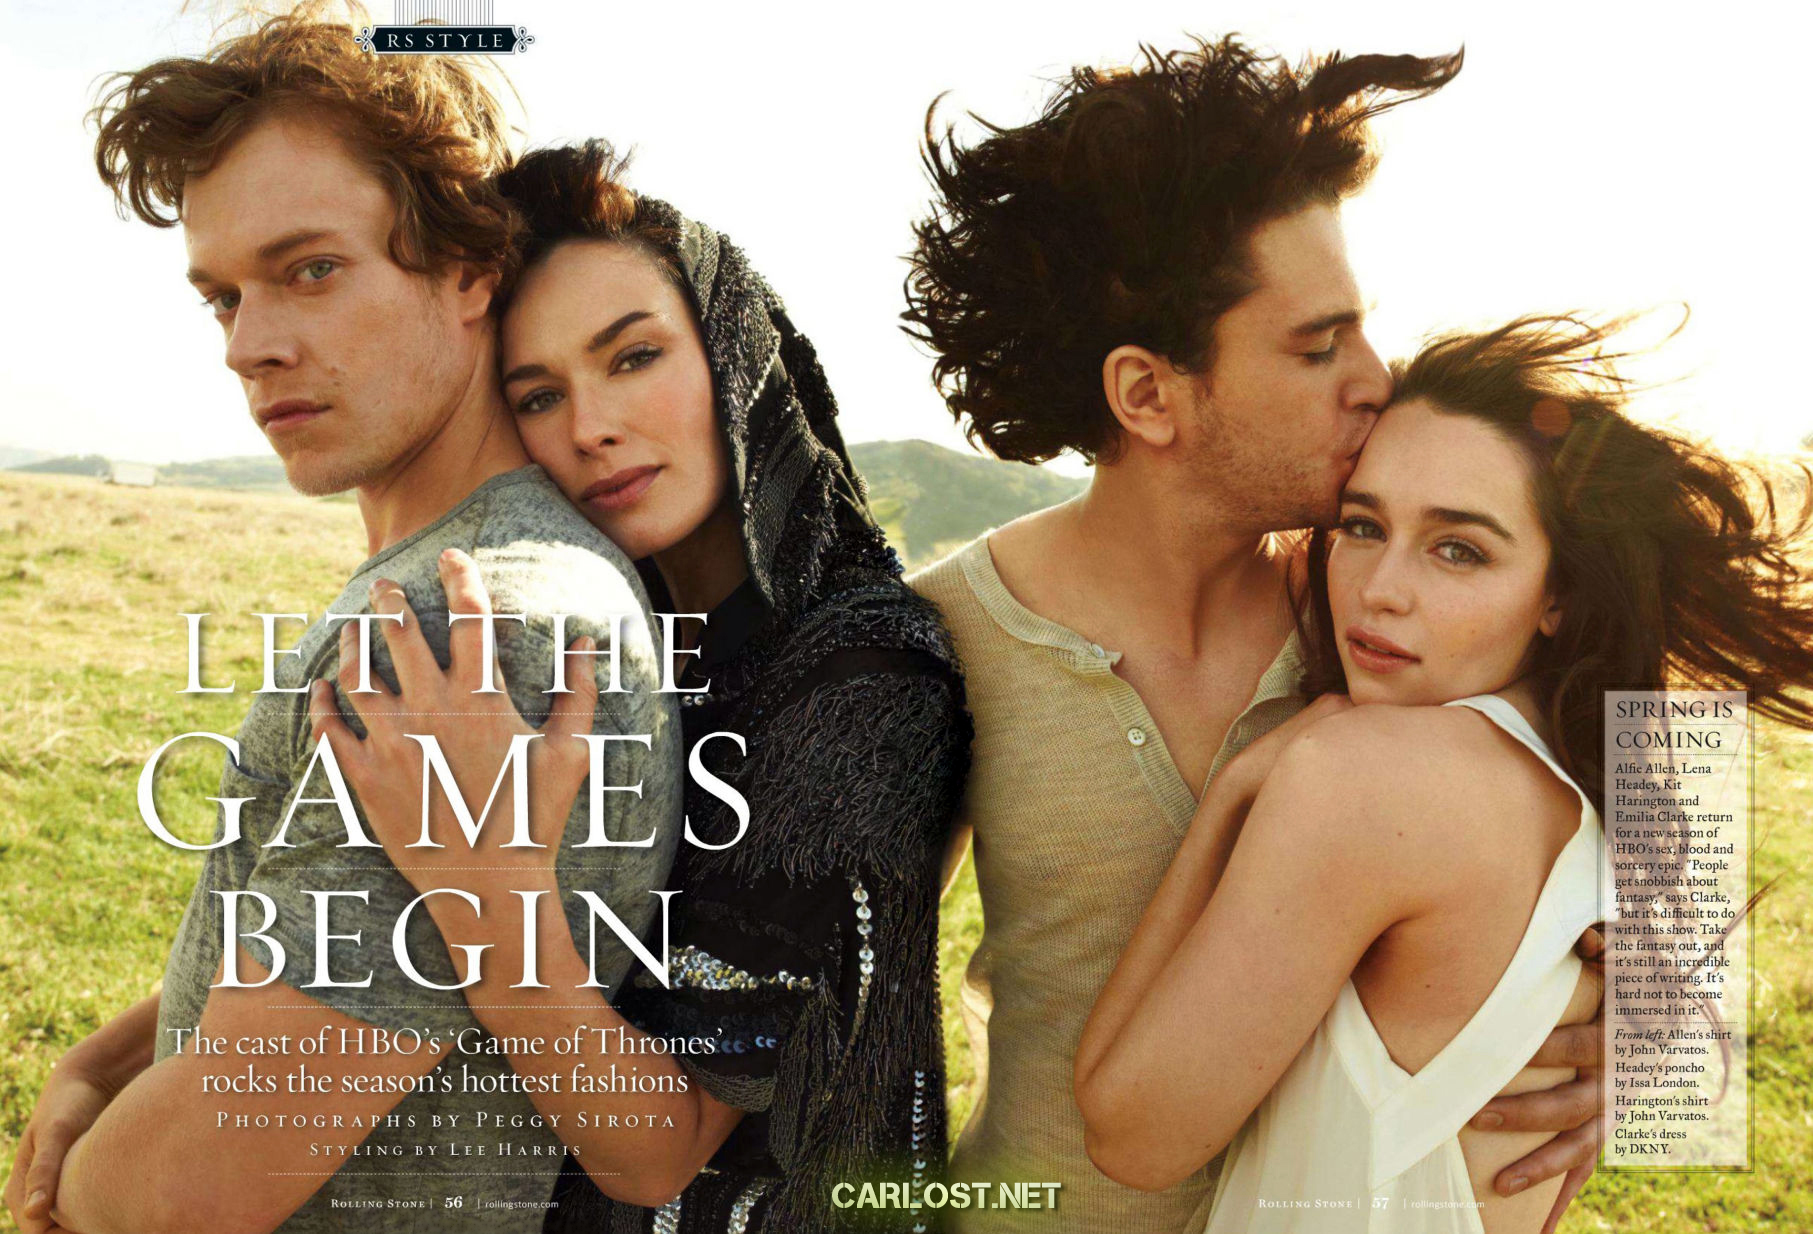 Game of Thrones - Rolling Stone Magazine Photoshoot